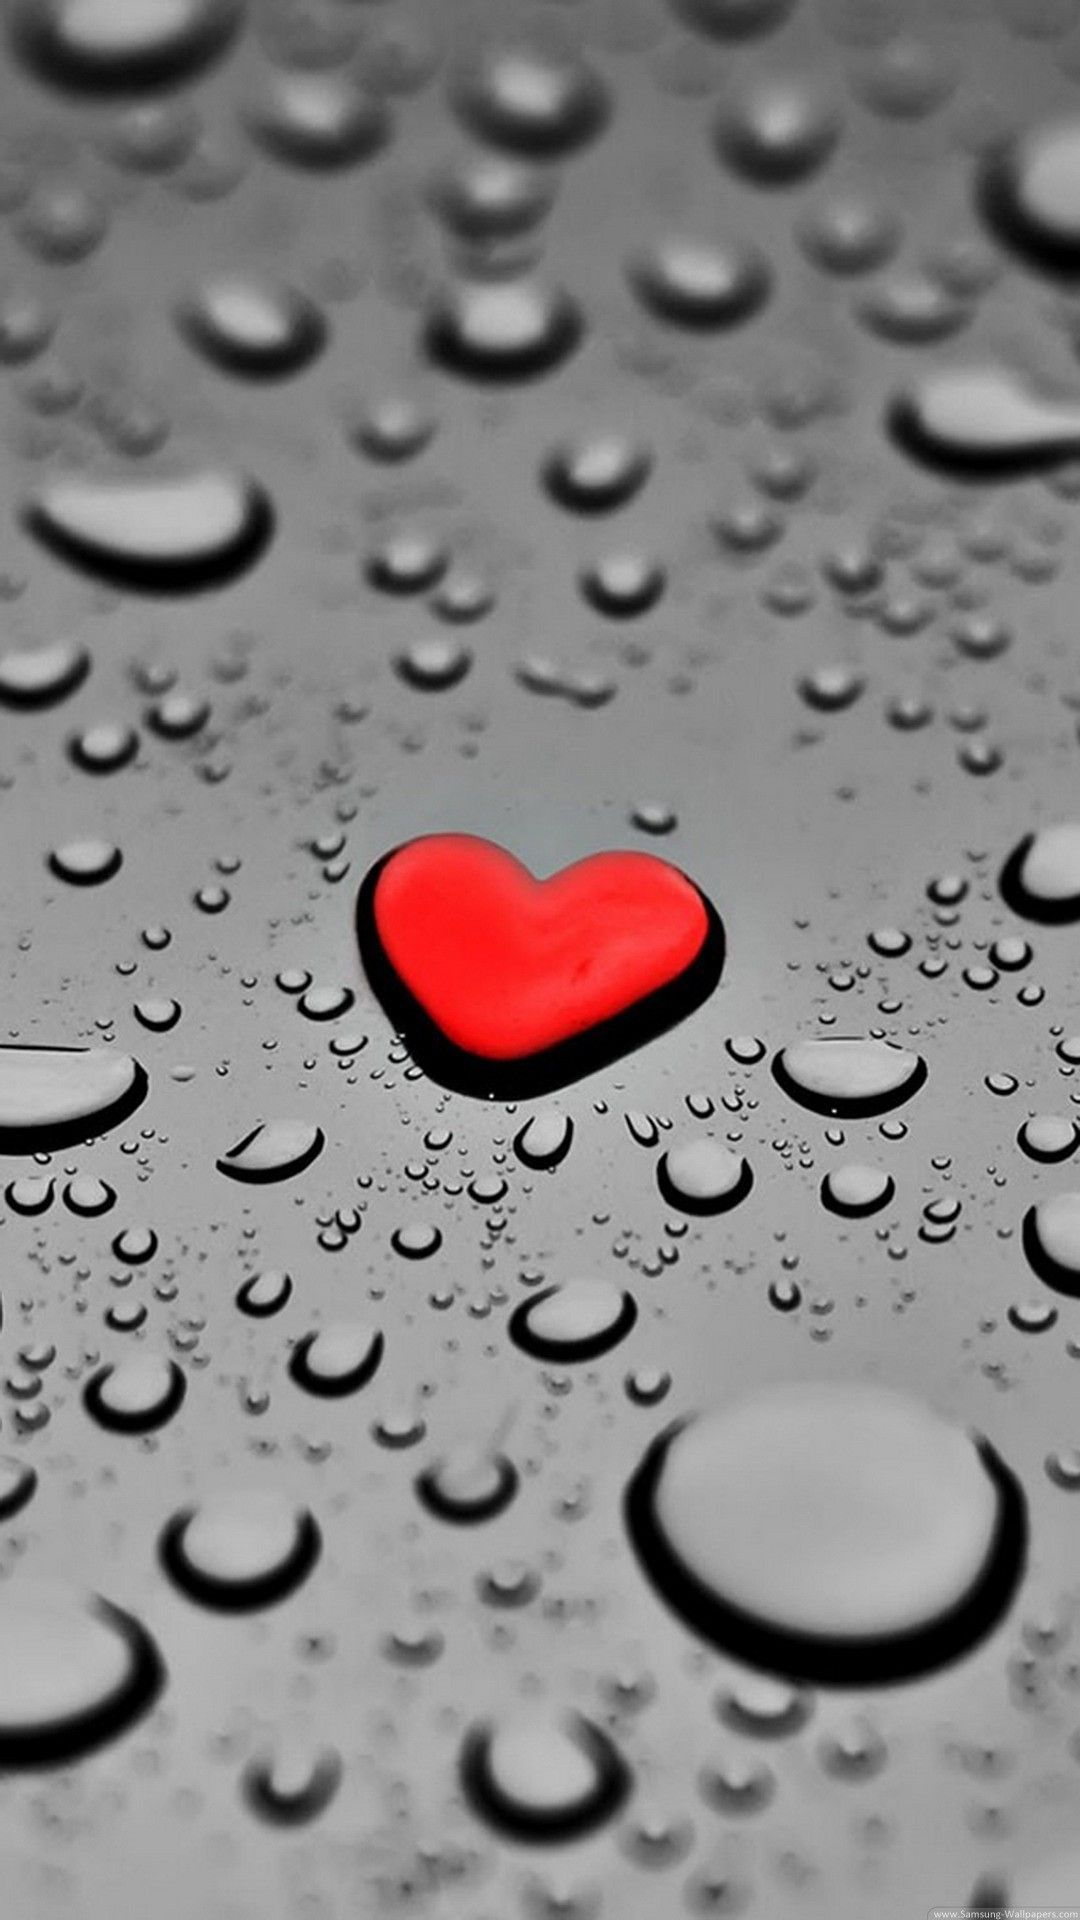 hd love wallpaper for mobile | all wallpapers | pinterest | wallpaper